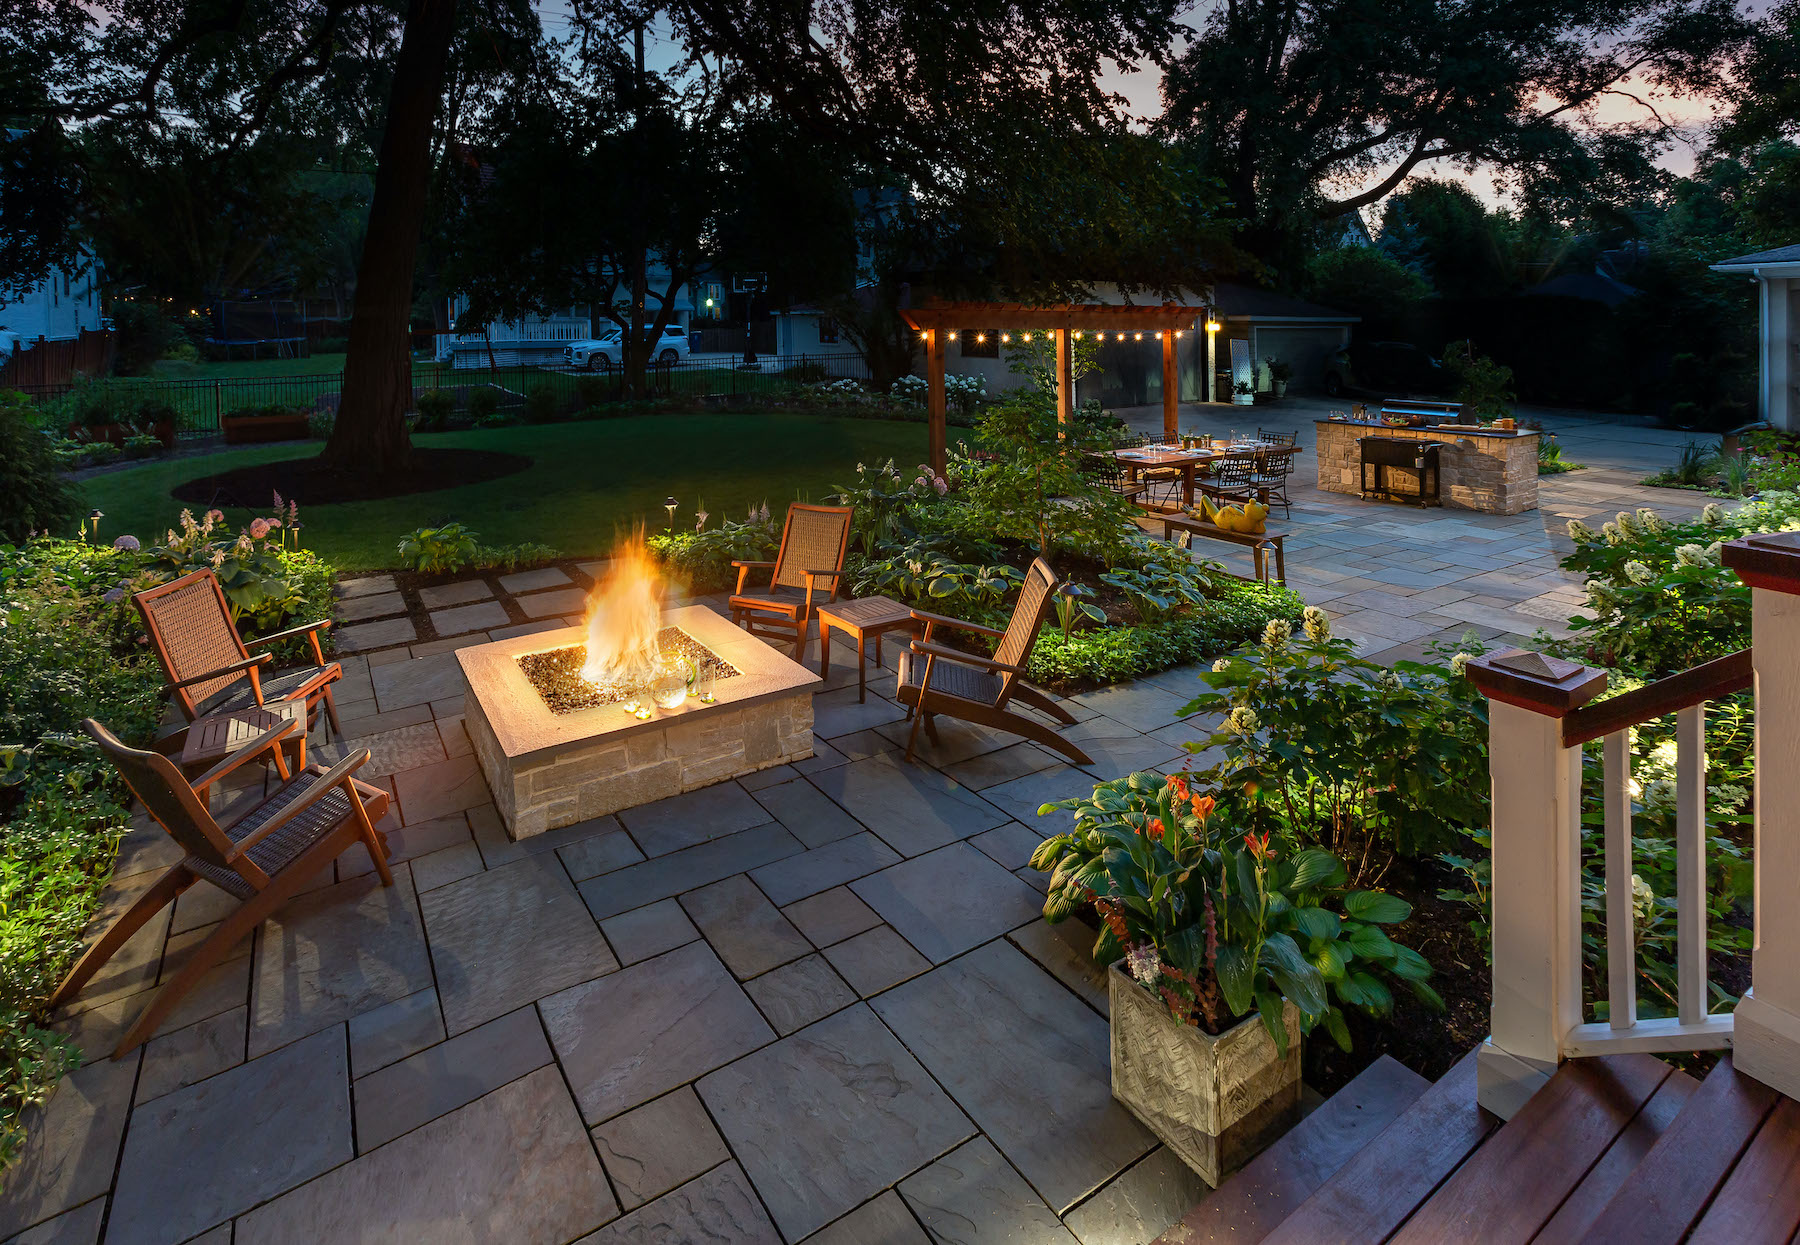 Fire pit, patio and outdoor kitchen